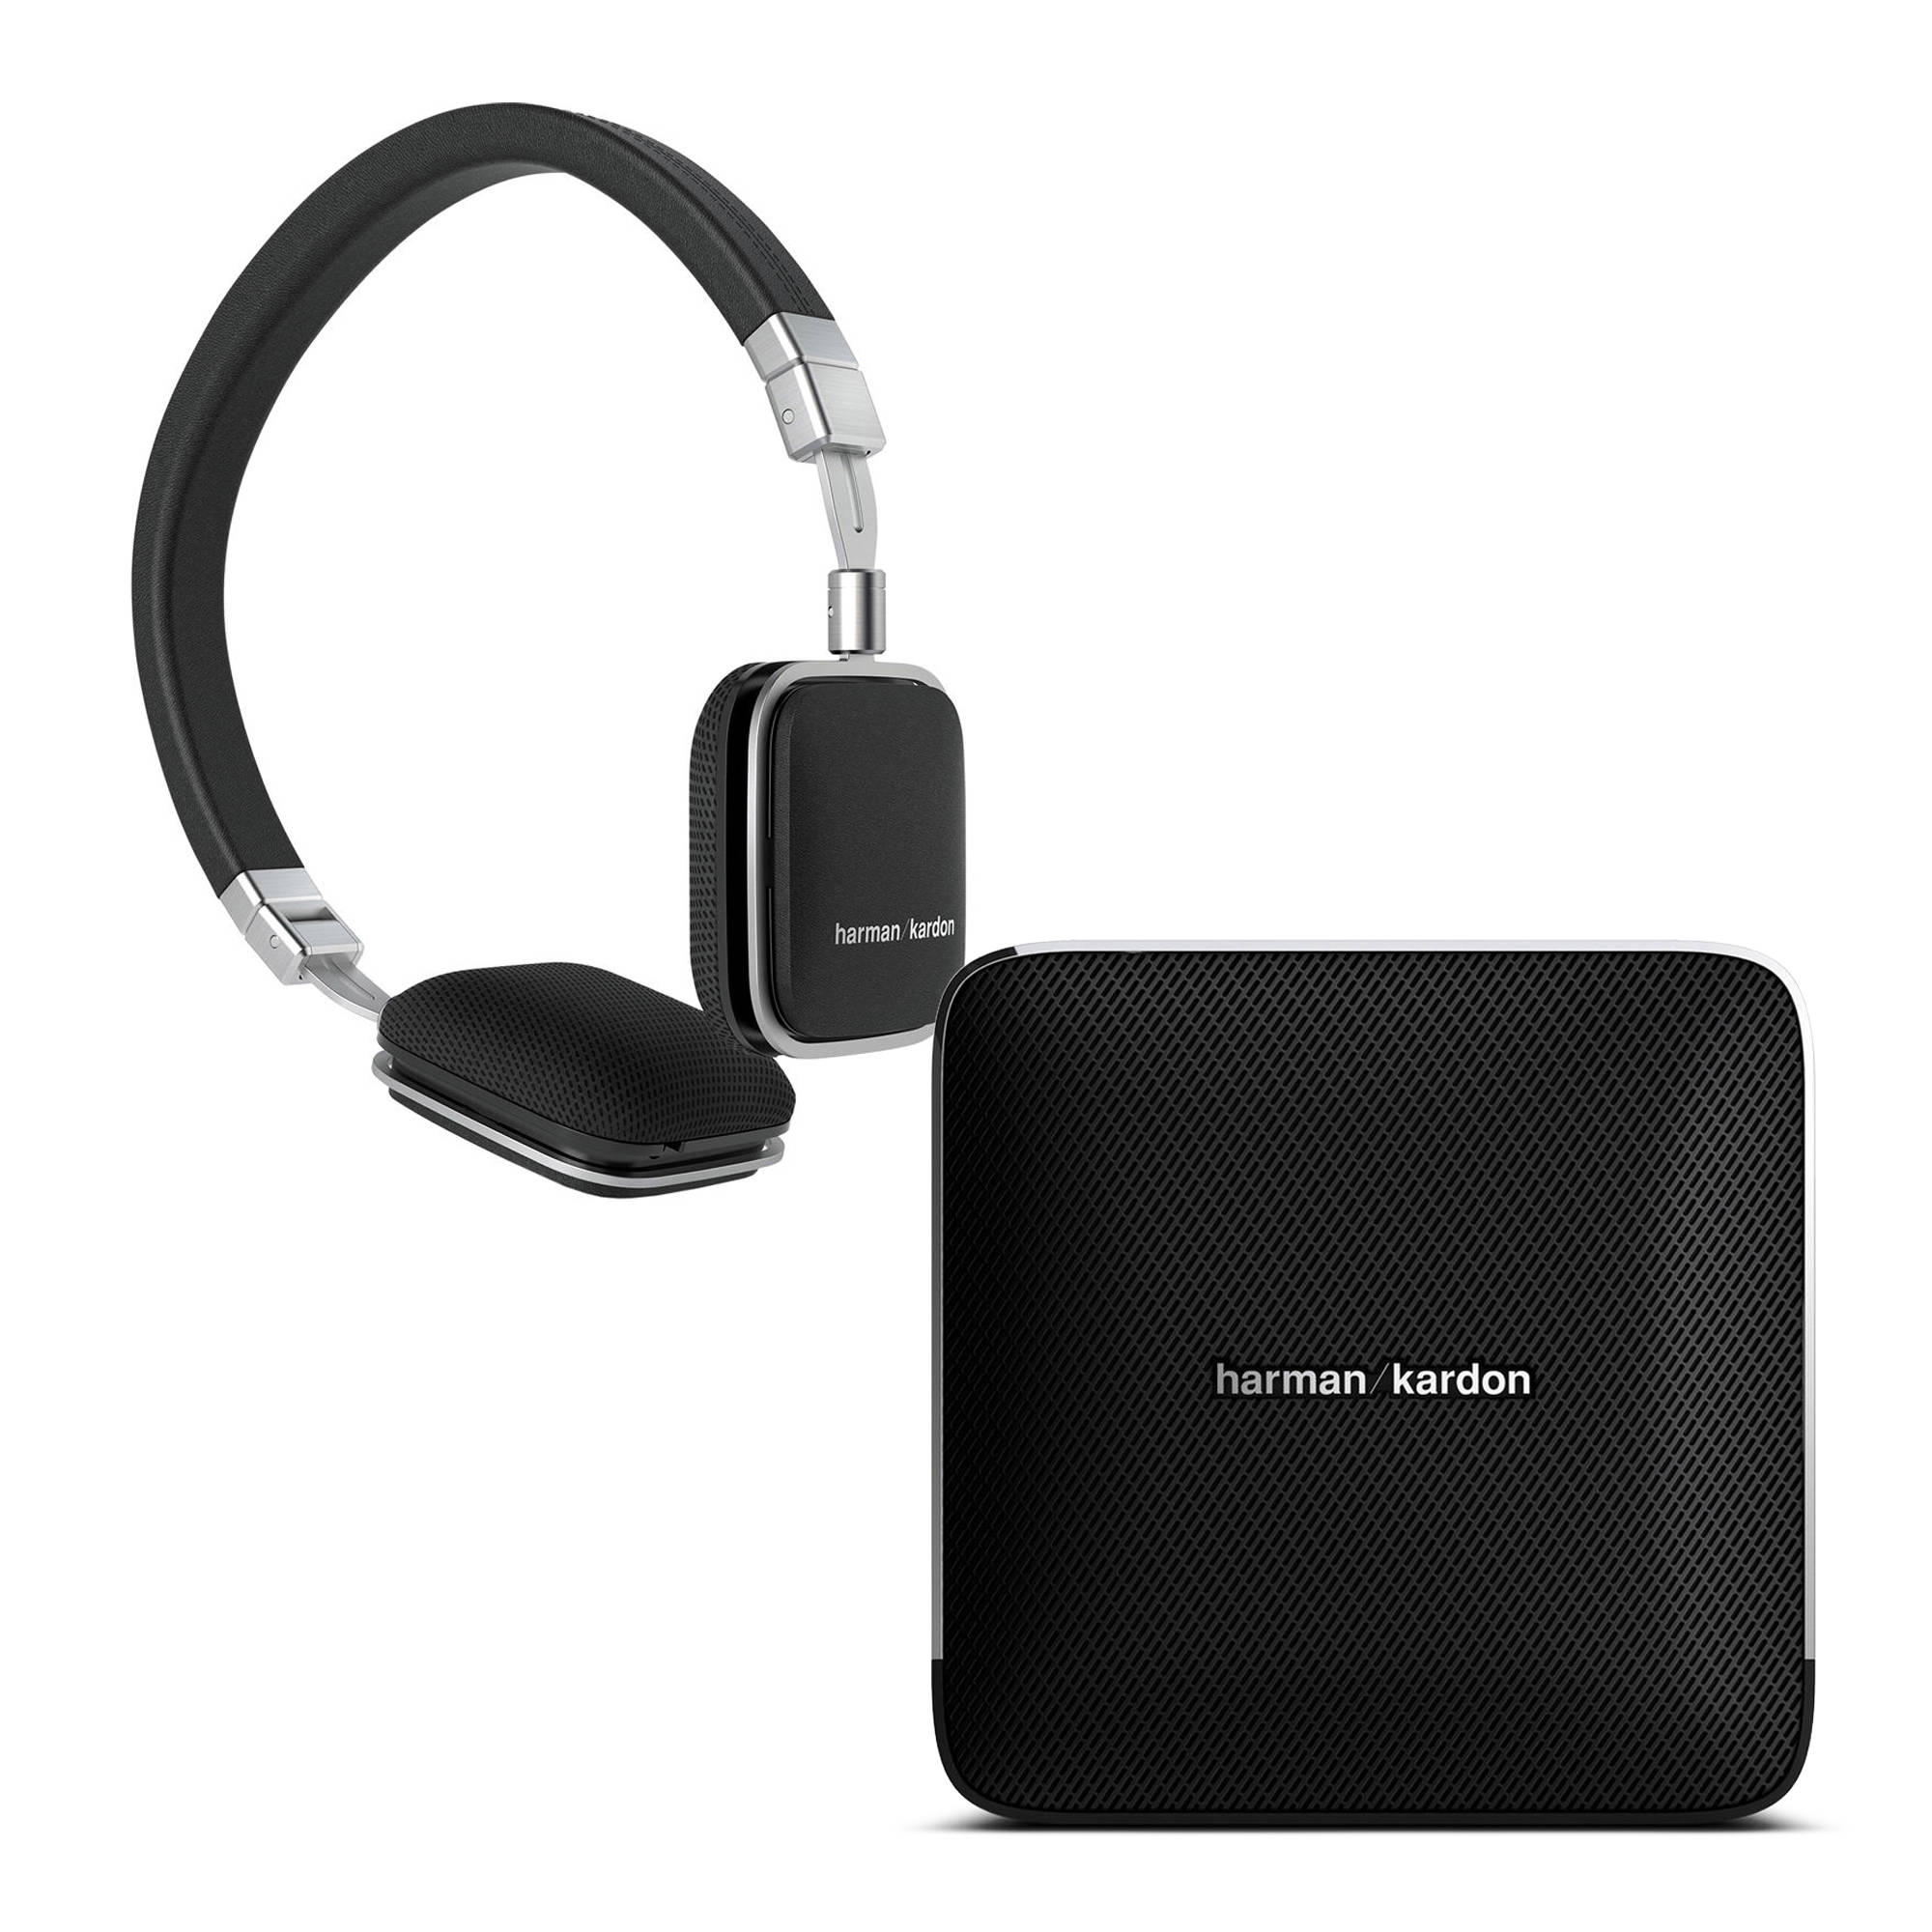 harman kardon esquire wireless speaker and soho ios headphones. Black Bedroom Furniture Sets. Home Design Ideas